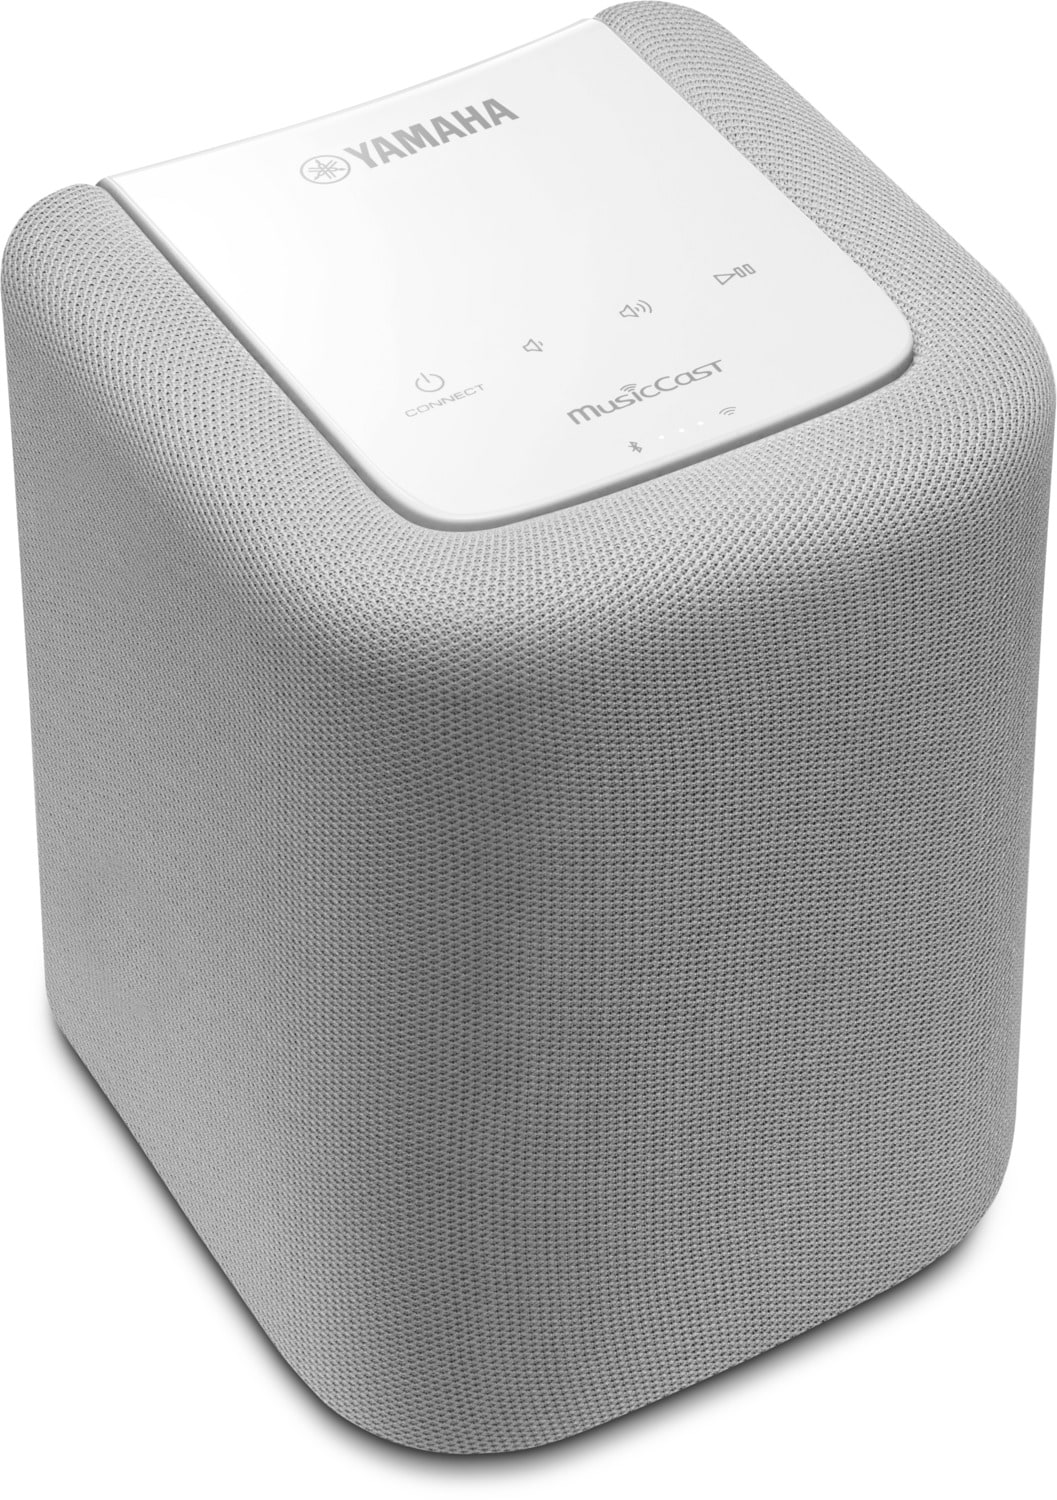 Sound Systems - Yamaha WX-010 Wireless Streaming Speaker – White